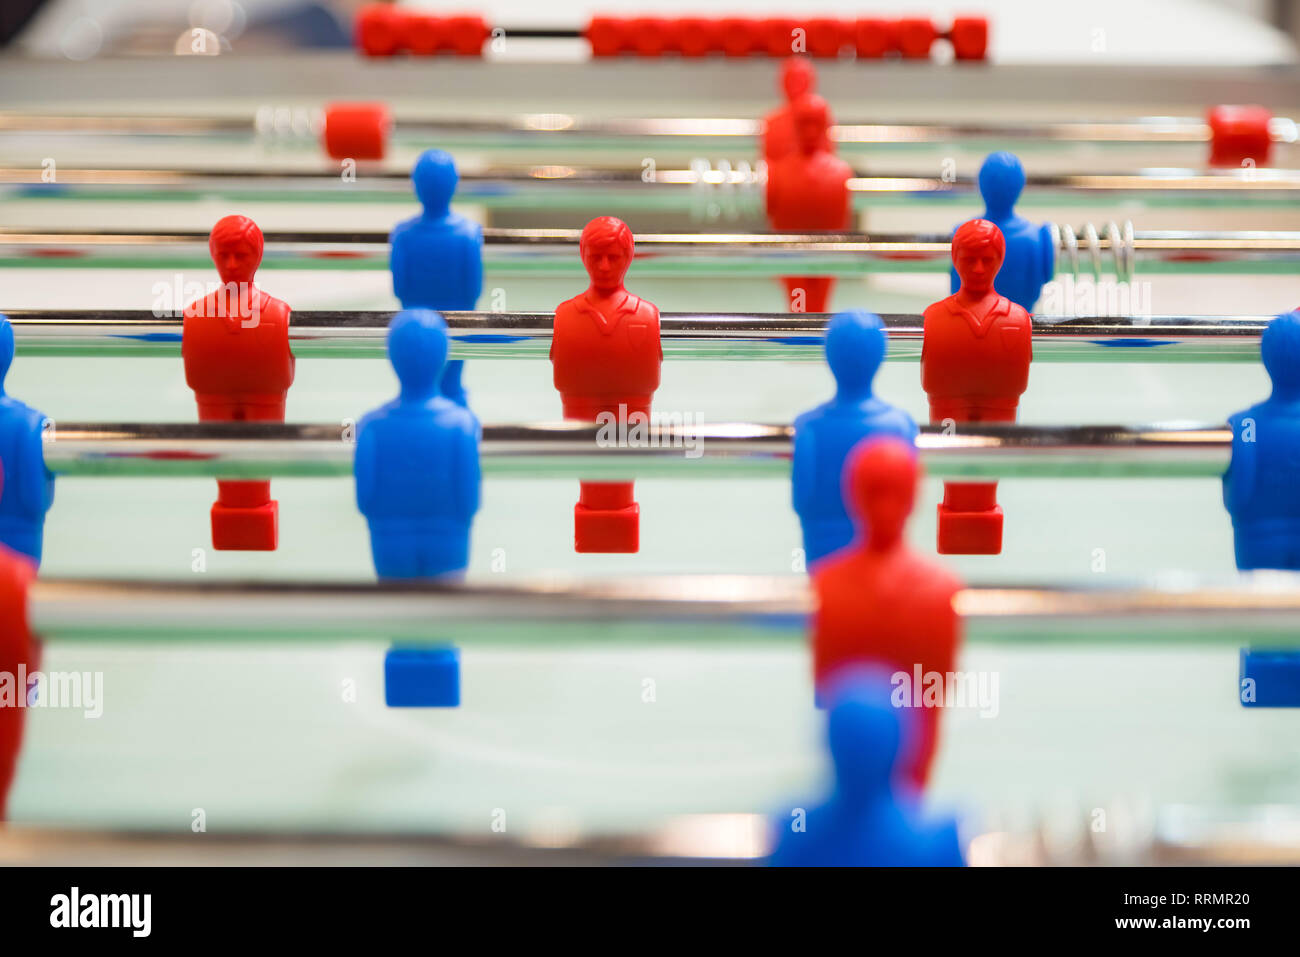 Foosball table soccer. Team sport, table football players game. Competitive table game - Stock Image